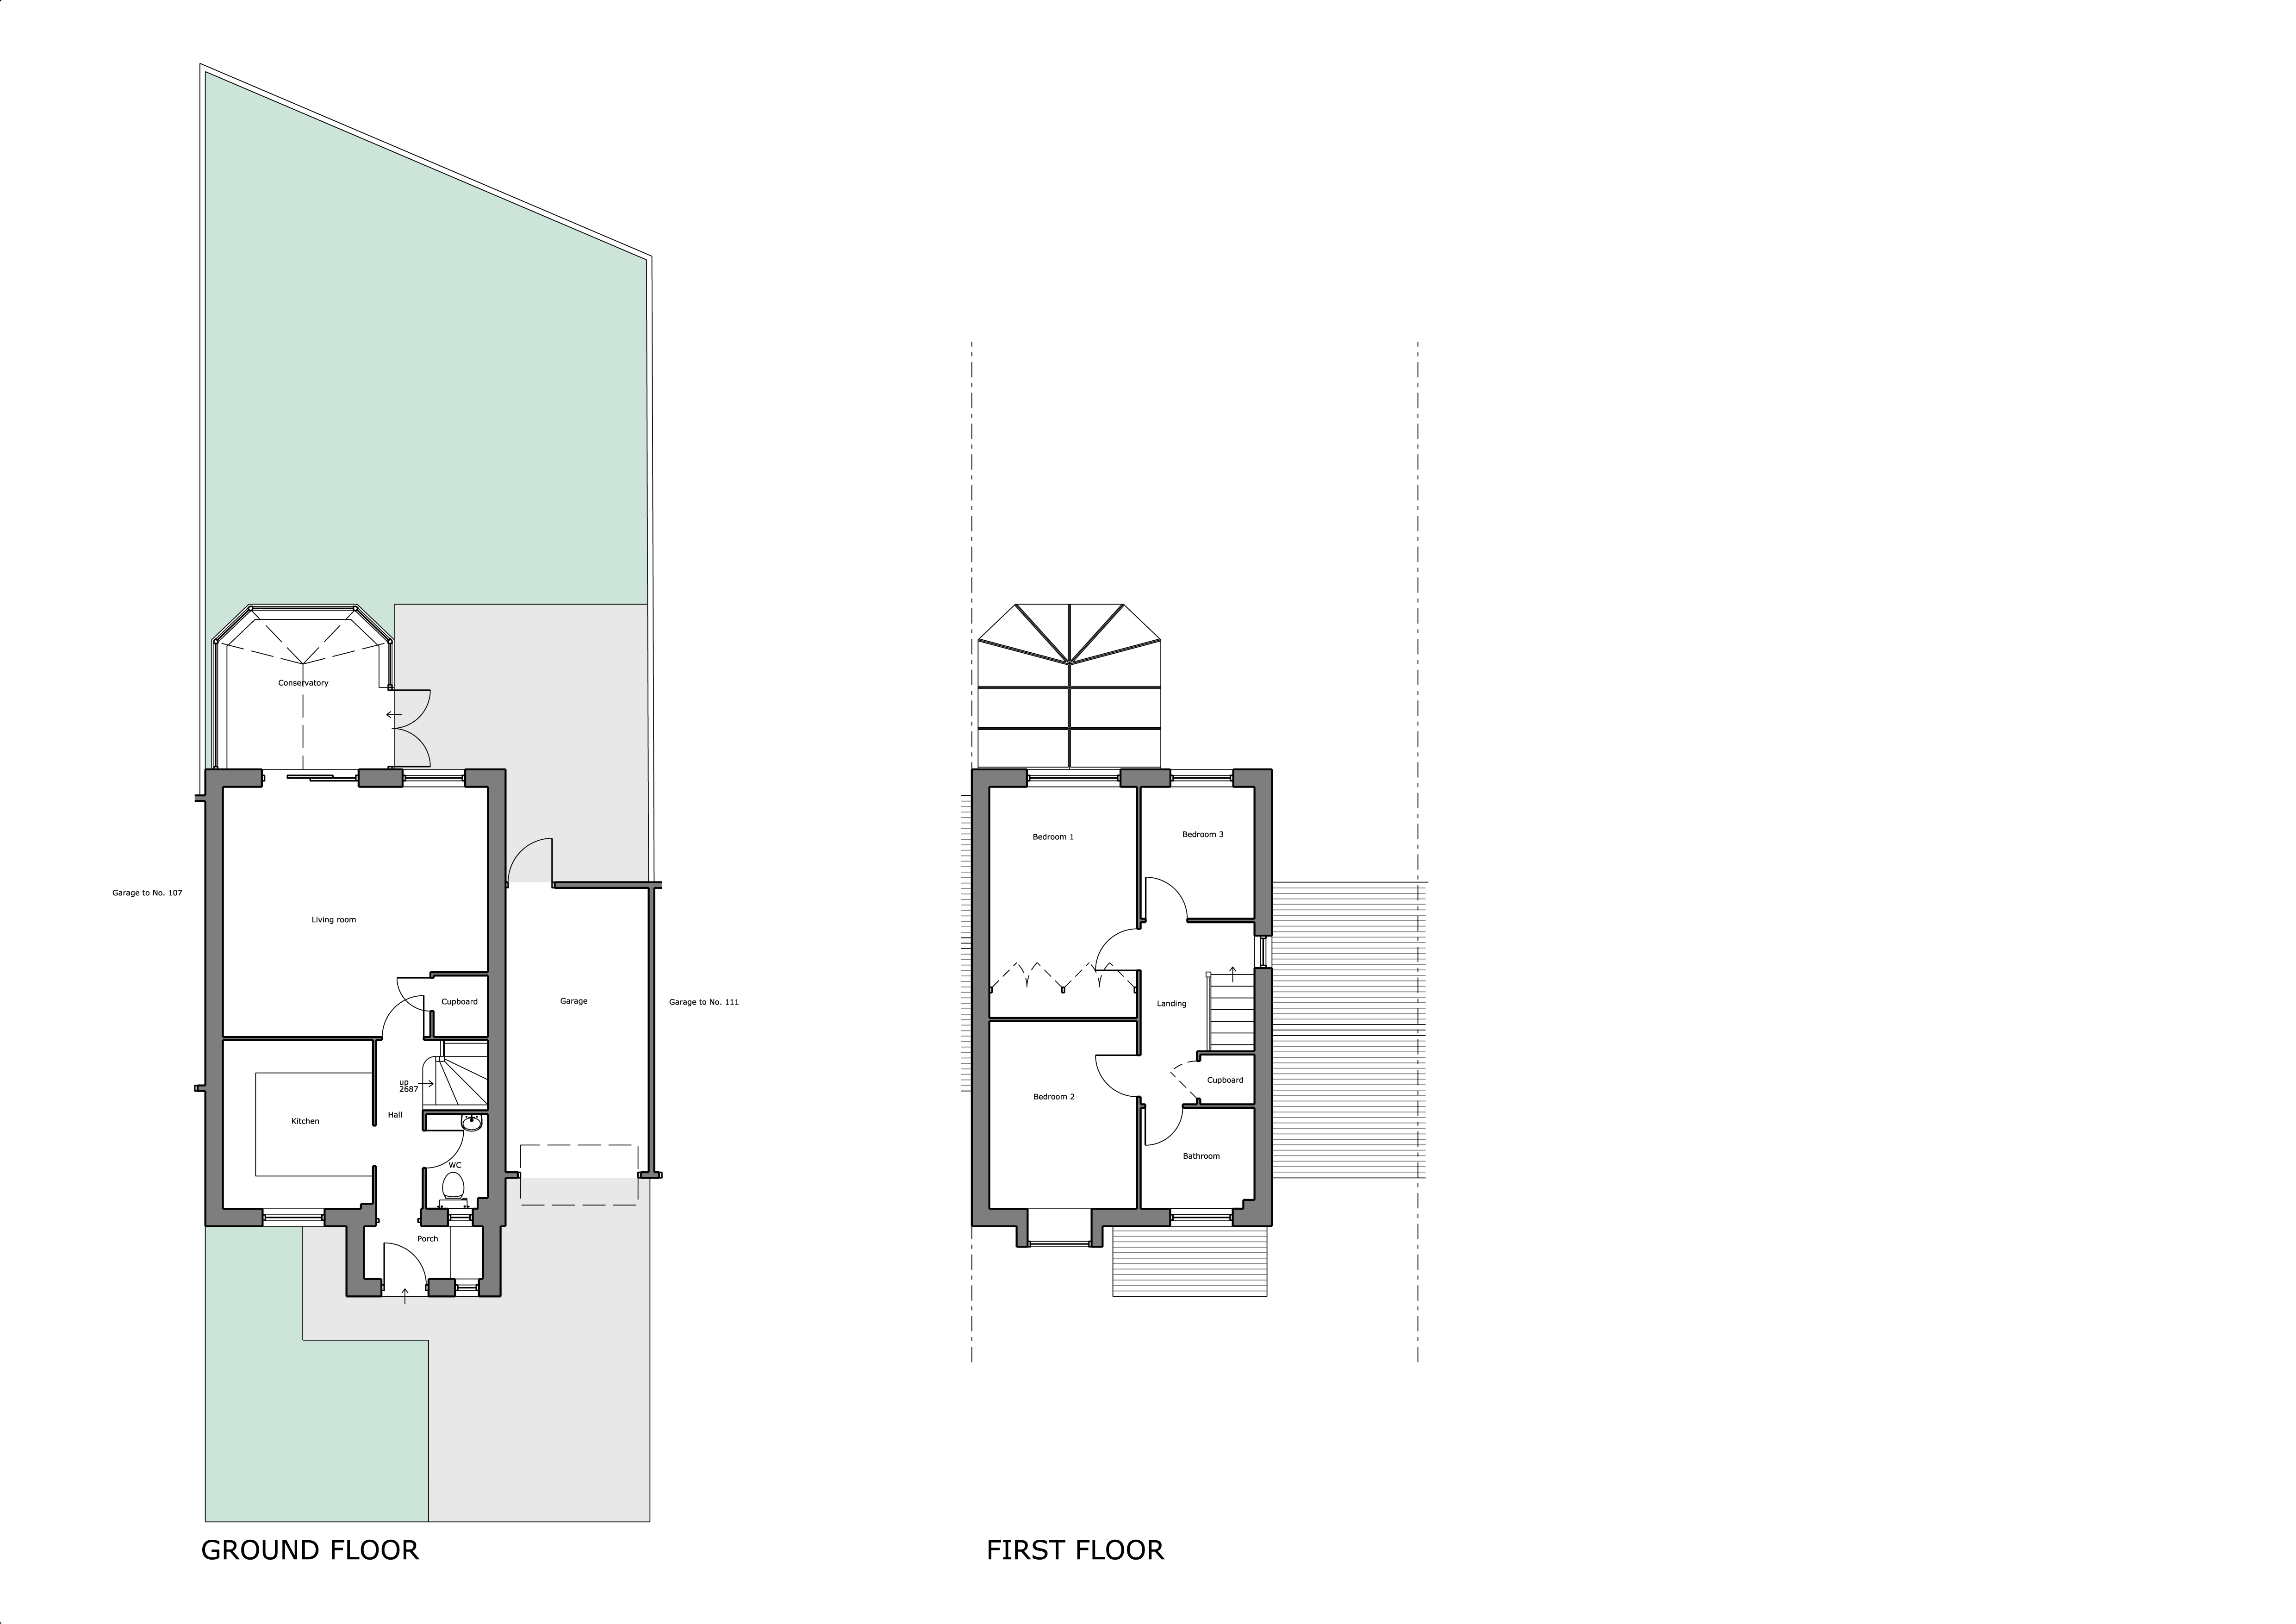 109 The Pastures Existing Plans